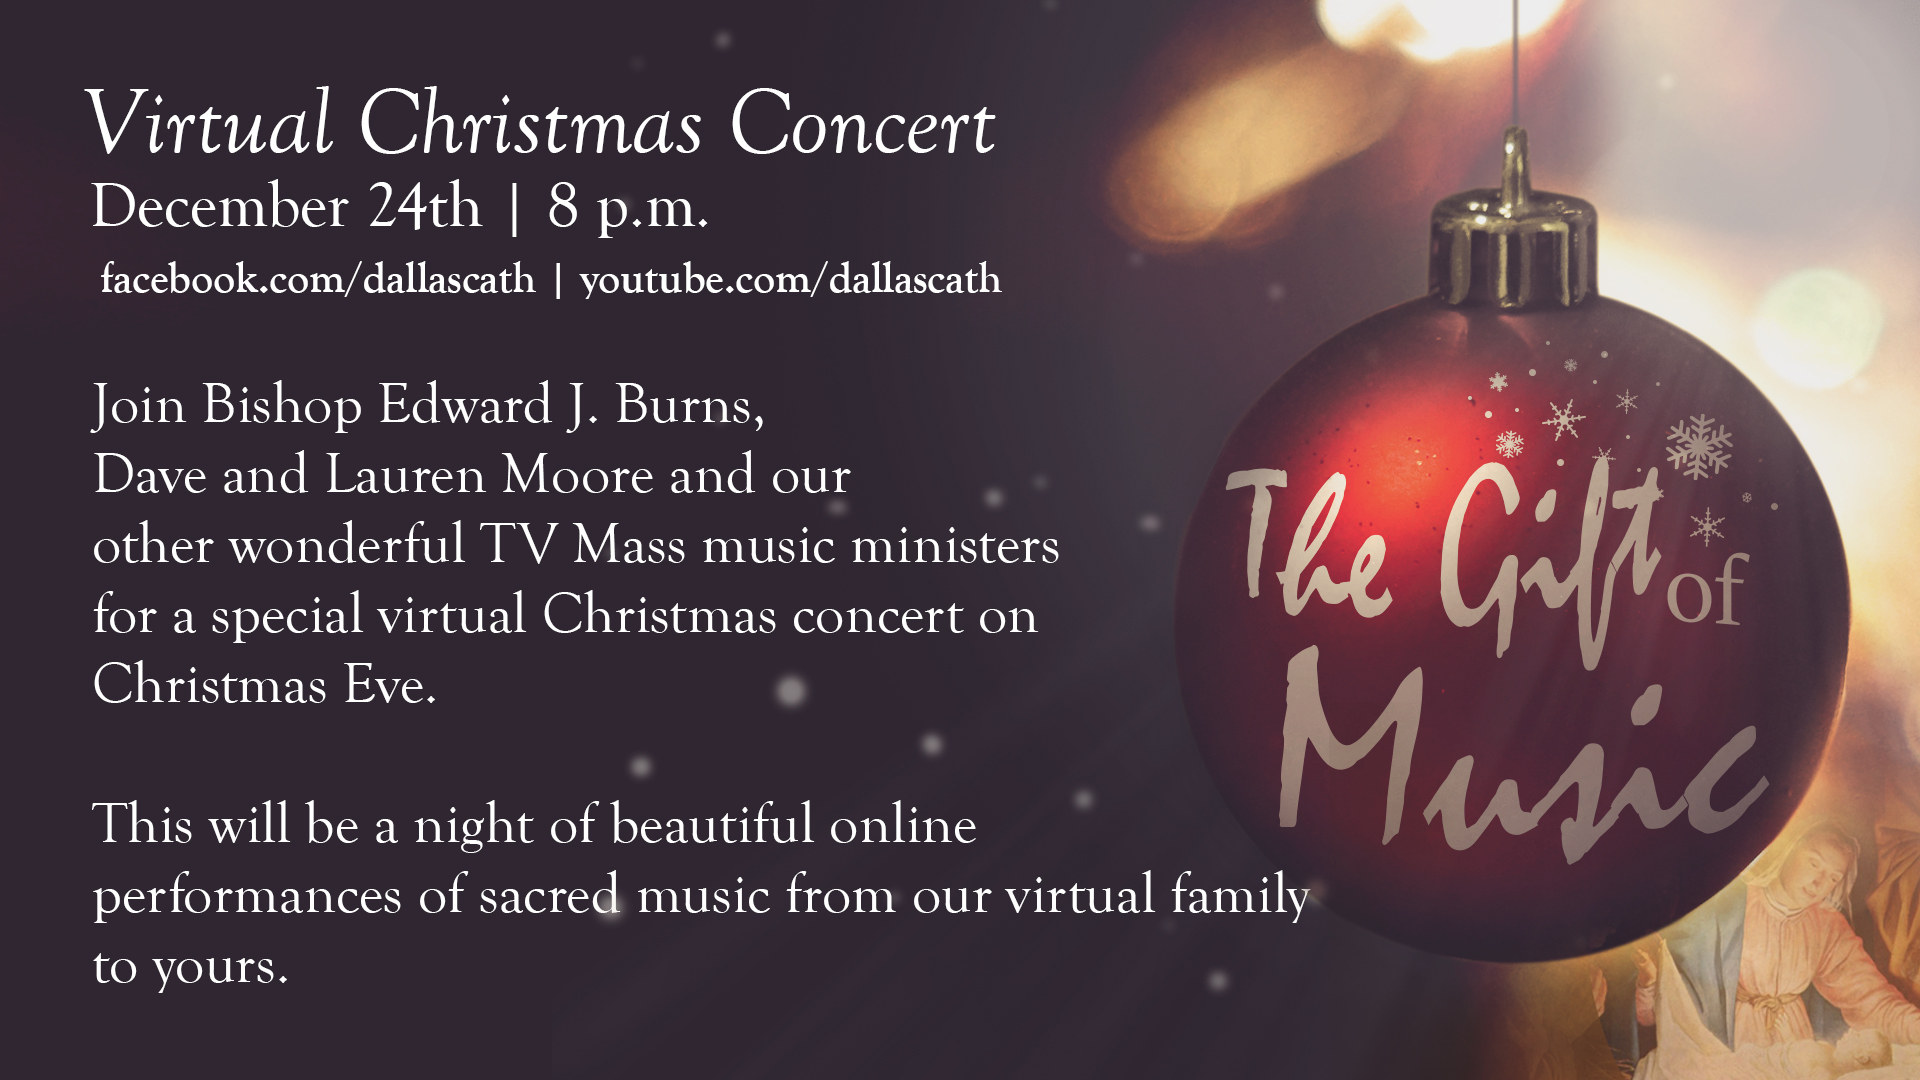 2021 Christmas Midnight Mass Forney News Events Televised Mass Sponsorship Continuing Into 2021 Enjoy This Virtual Christmas Eve Concert